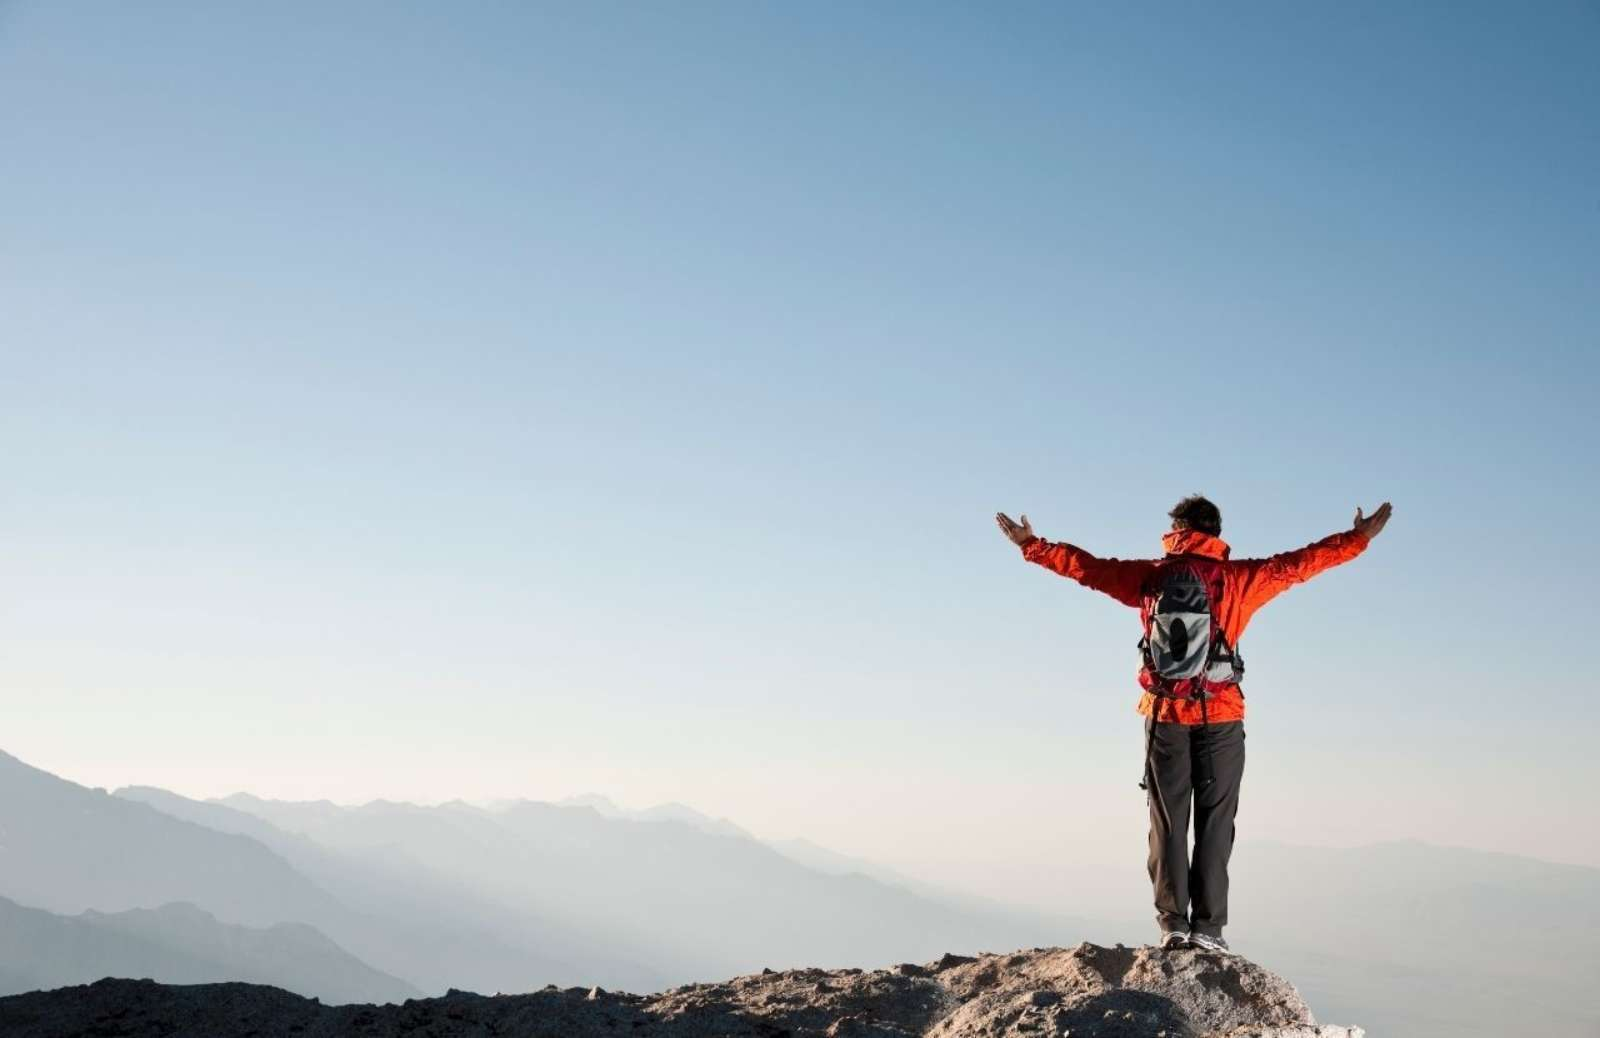 Person standing on mountain summit with outstretched arms